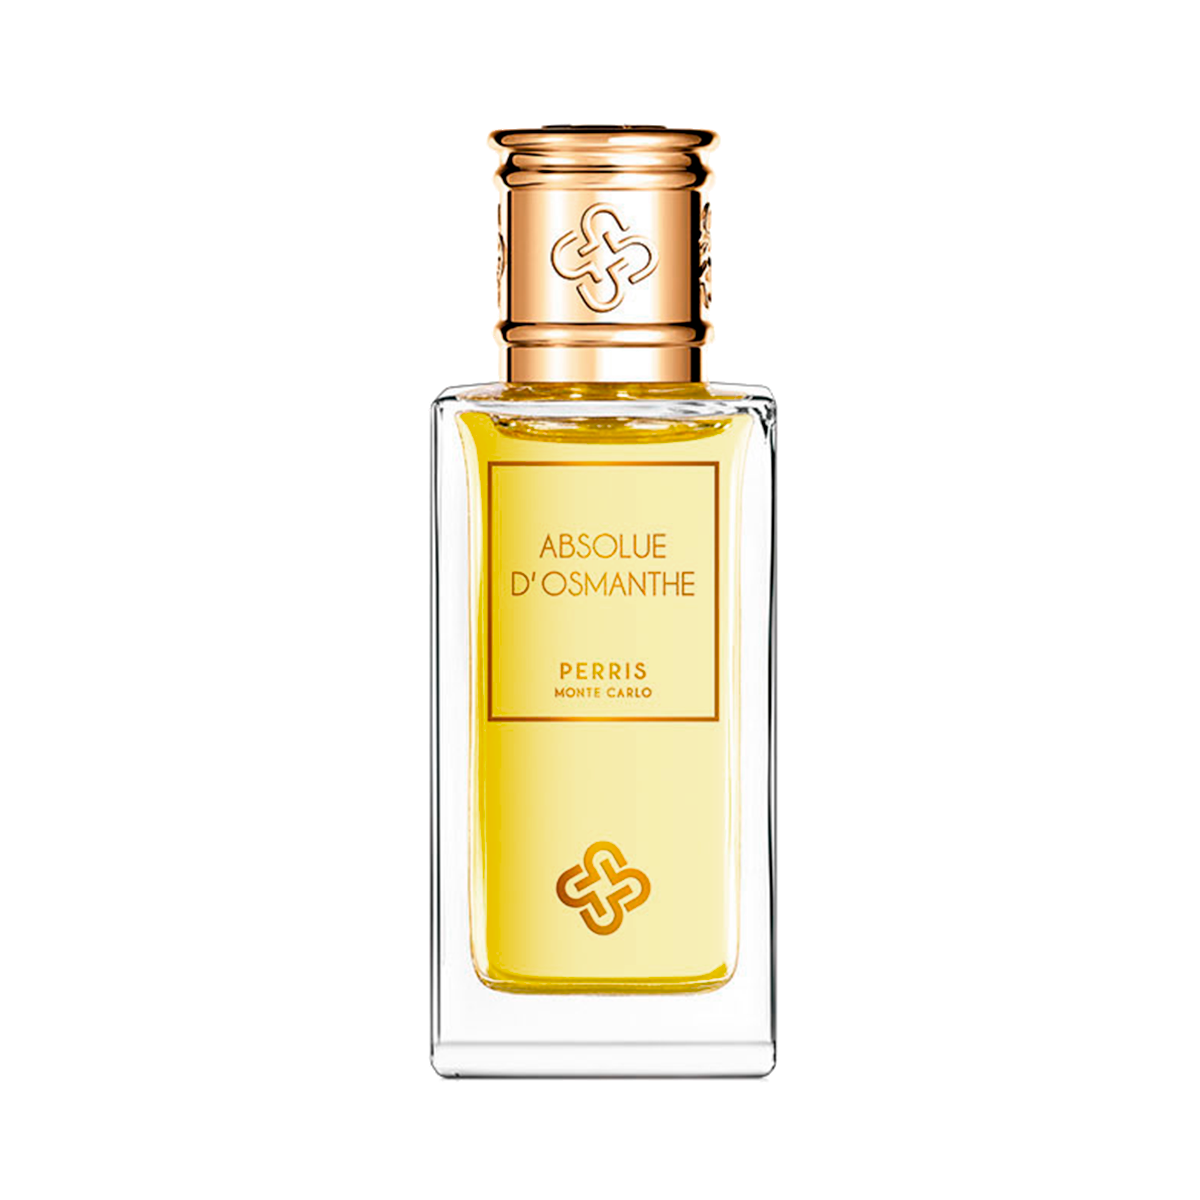 Absolue D'Osmanthe - Perris Monte Carlo - EP 50ml